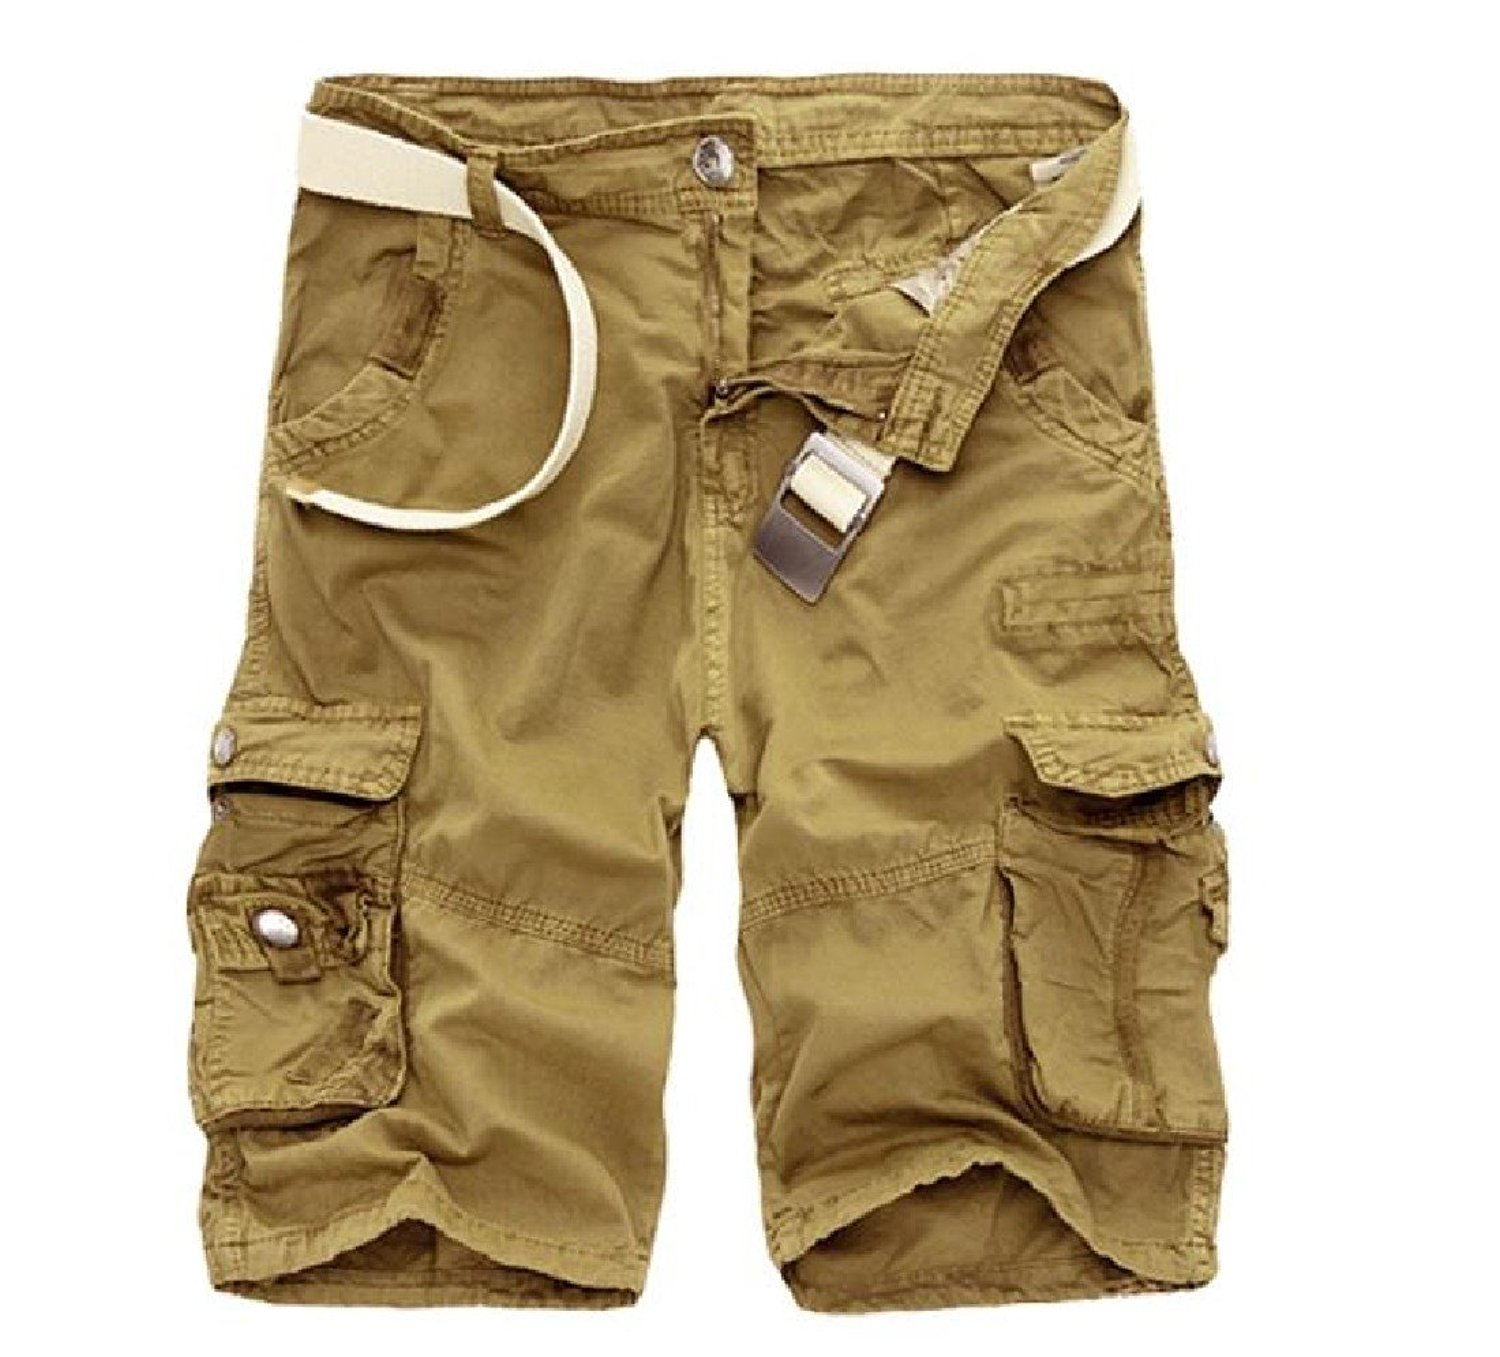 Sheng Xi Men's Outdoor Camouflage Cozy Printed Twill Multi-Color Oversize Cargo Shorts